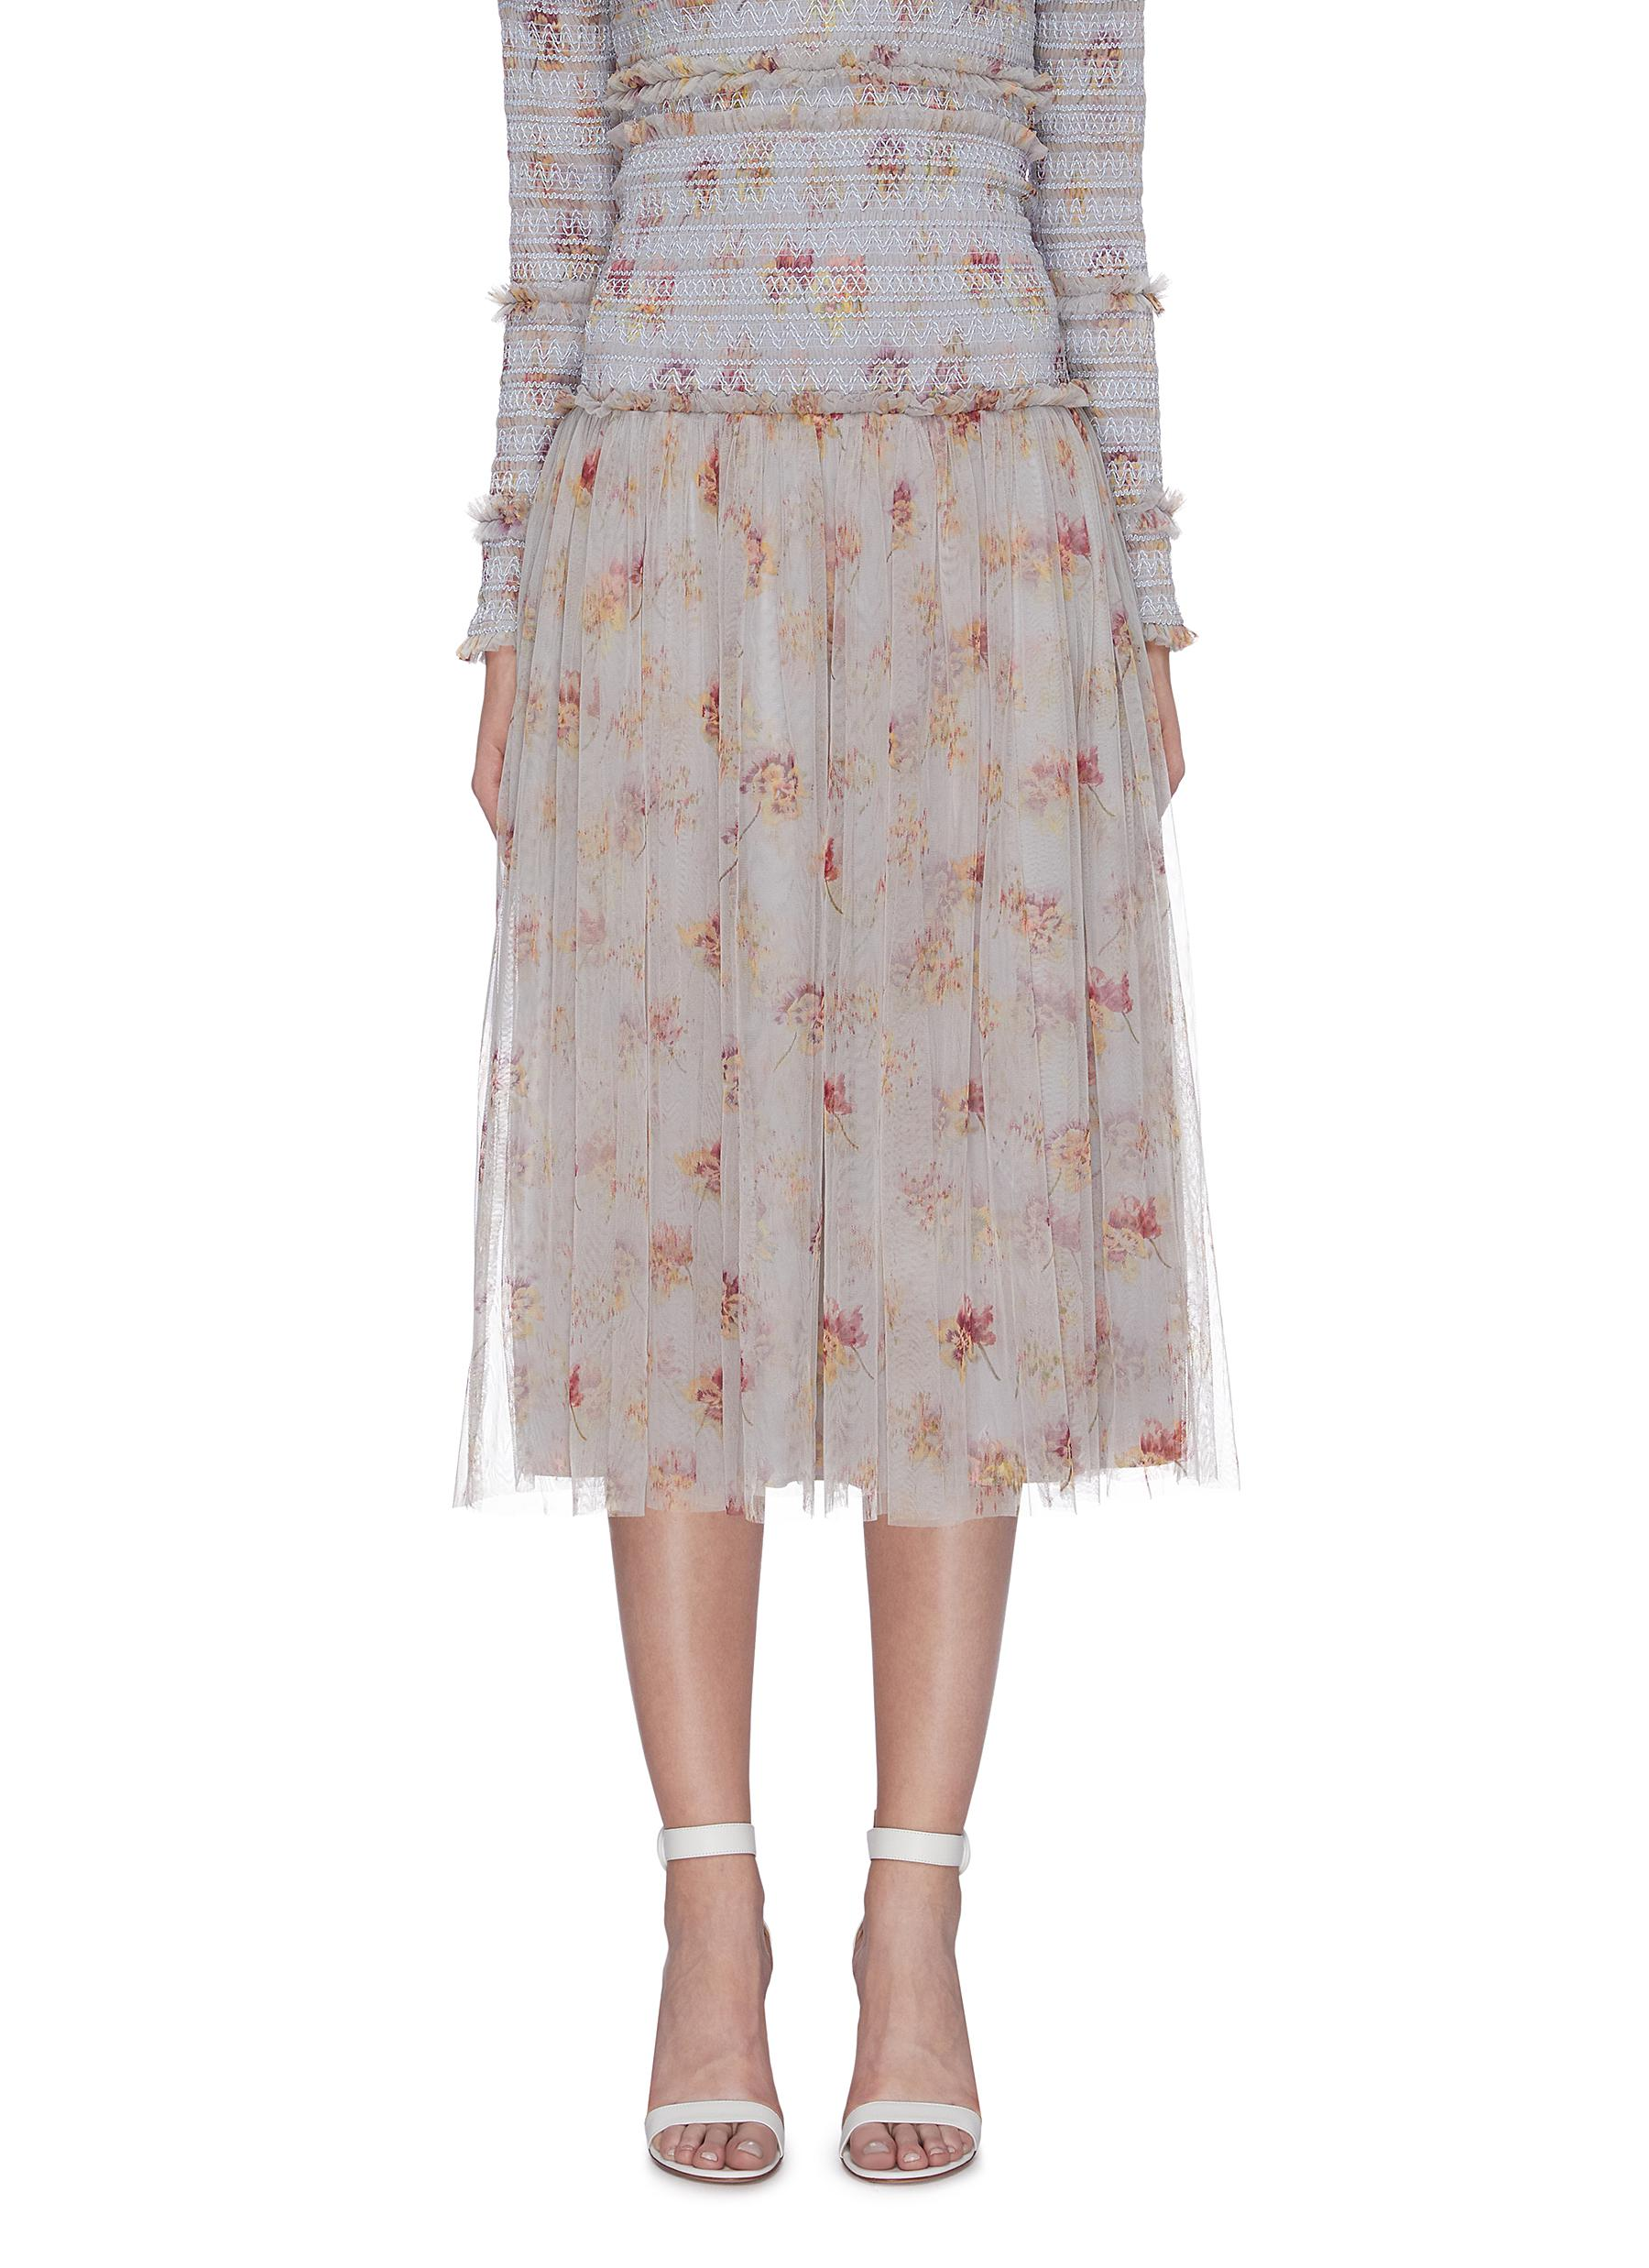 Think Of Me smocked waist floral print tulle skirt by Needle & Thread